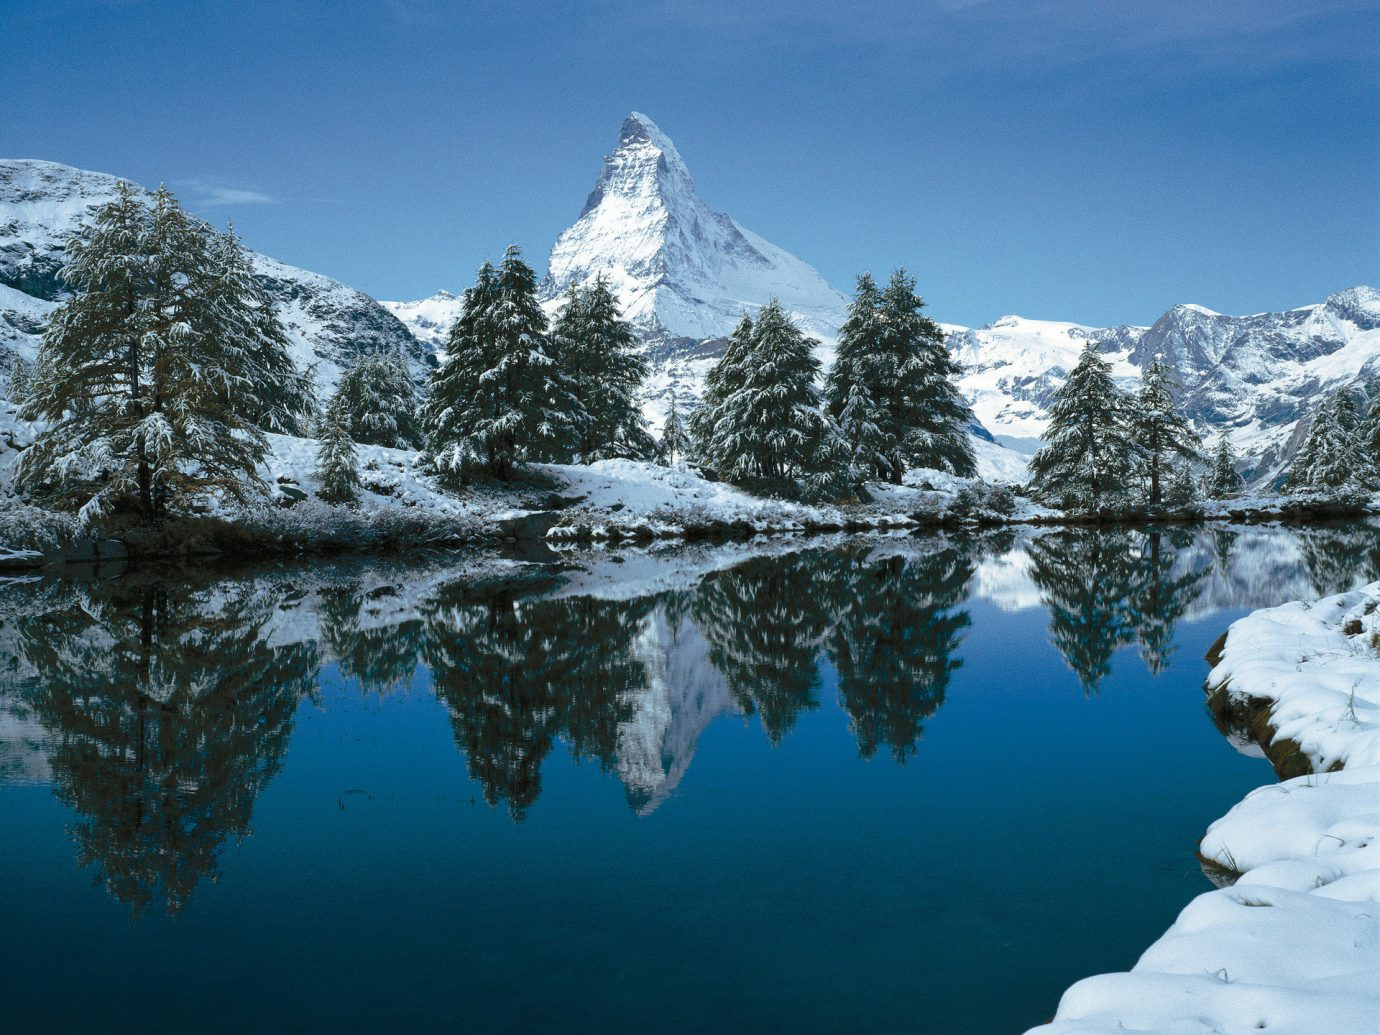 alpine skiing Mountains + Skiing Trip Ideas tree outdoor sky mountainous landforms snow Nature mountain reflection landform wilderness mountain range Winter Lake weather season cloud landscape alps ice Forest surrounded hillside